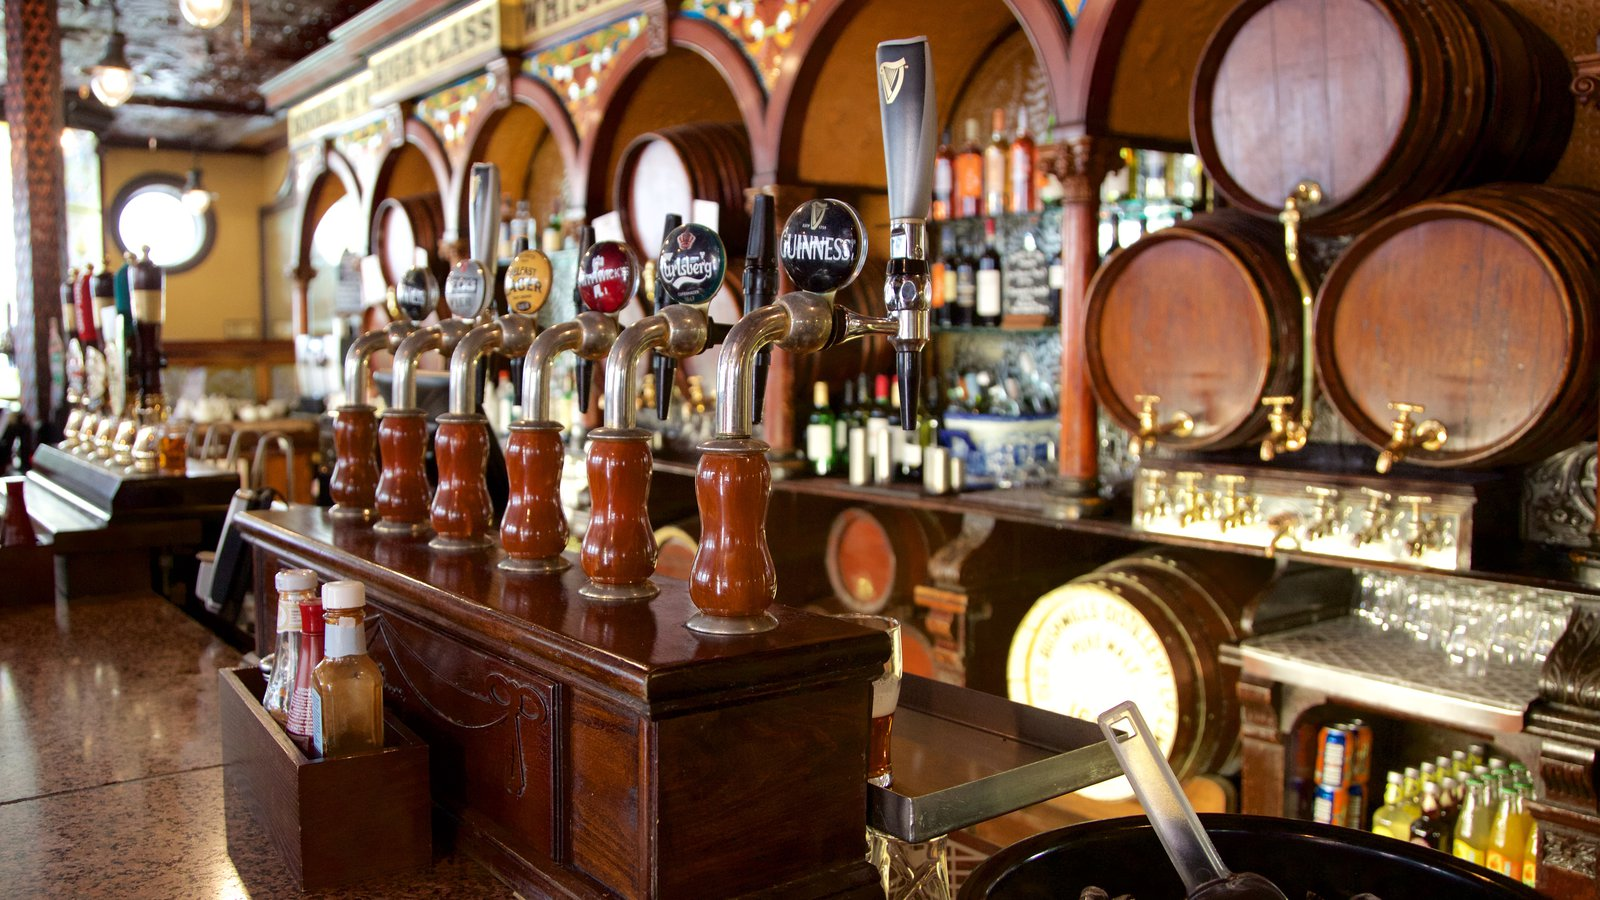 Belfast showing interior views, a bar and drinks or beverages